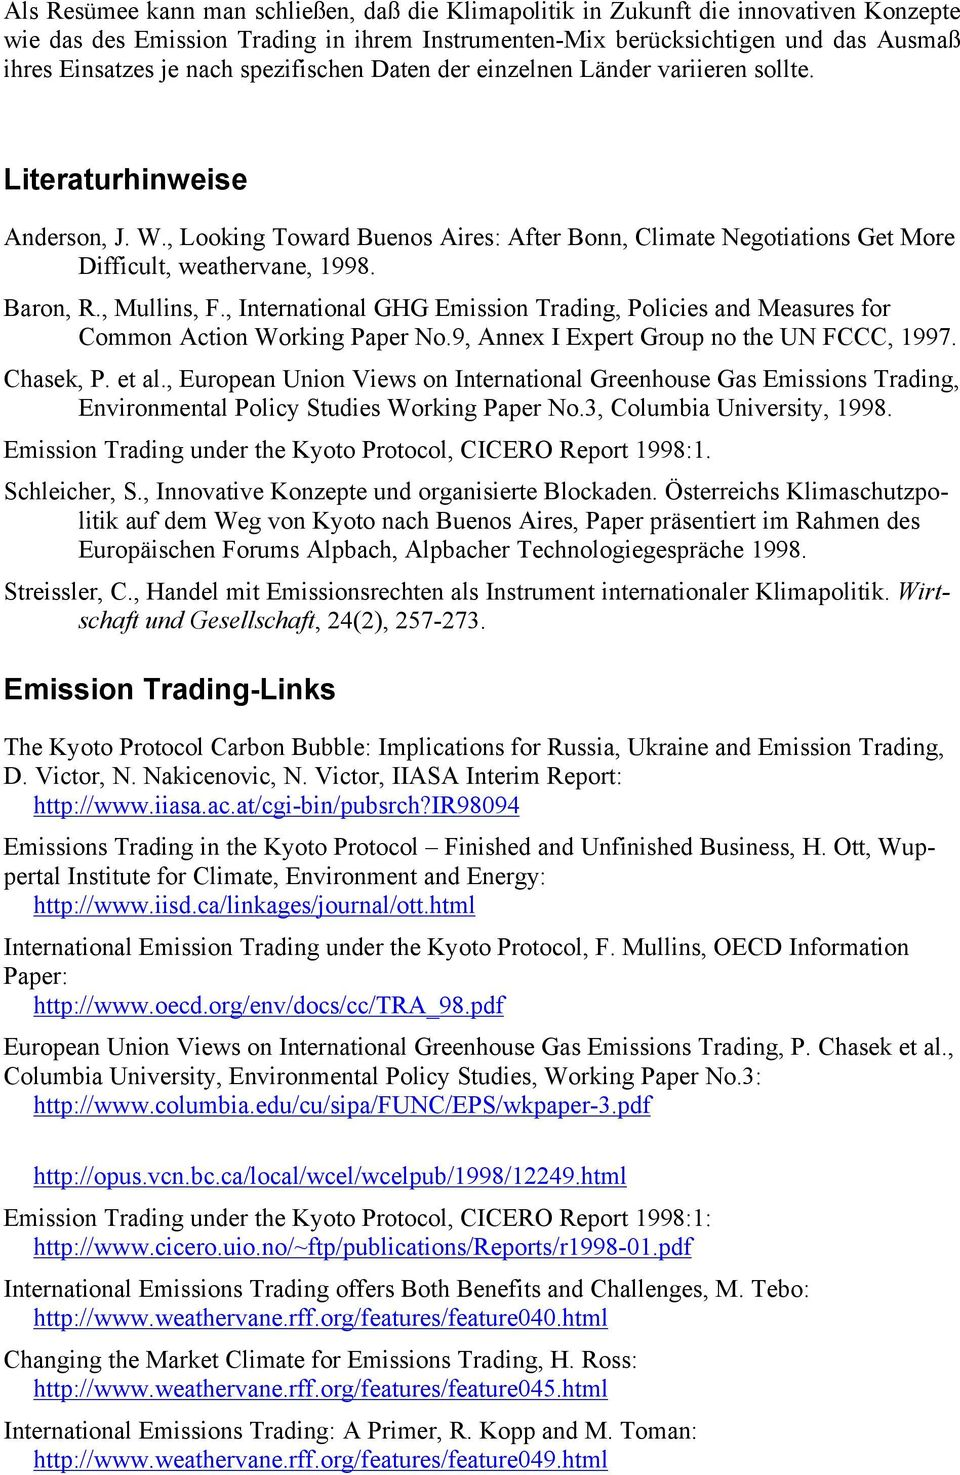 Baron, R., Mullins, F., International GHG Emission Trading, Policies and Measures for Common Action Working Paper No.9, Annex I Expert Group no the UN FCCC, 1997. Chasek, P. et al.